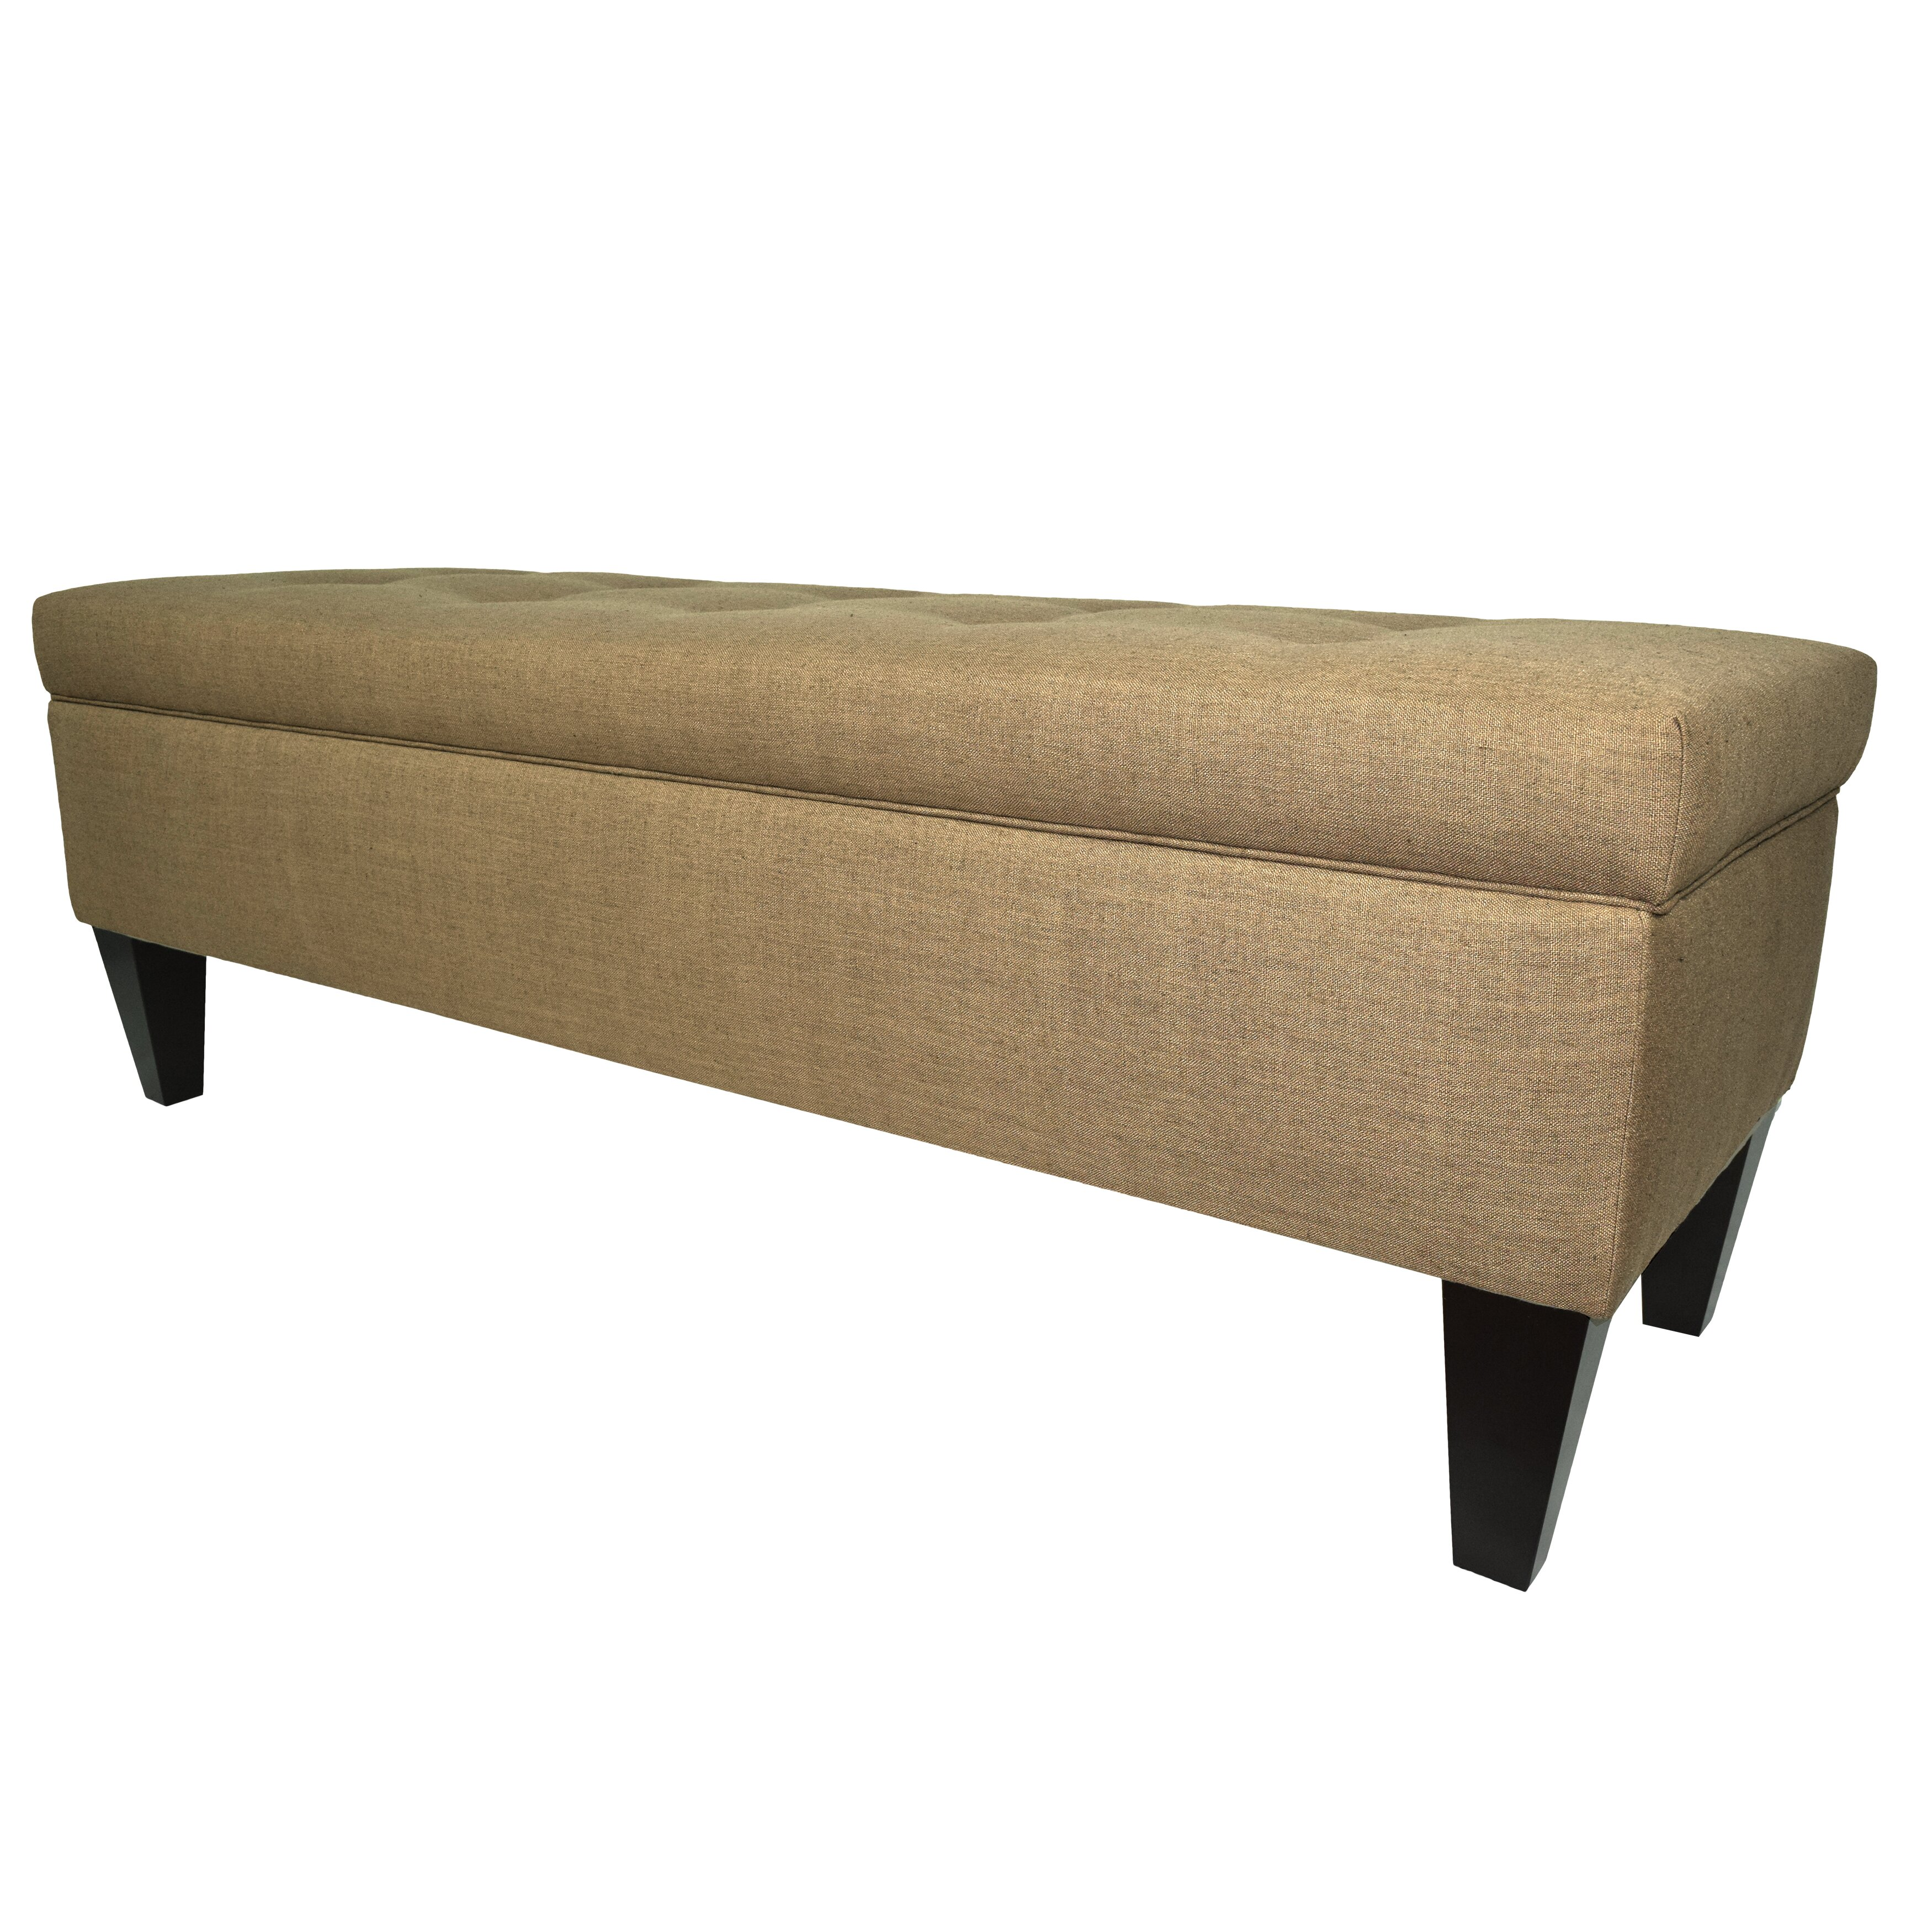 MJLFurniture Allure Wood Storage Bedroom Bench Wayfair. Full resolution  image, nominally Width 3500 Height 3500 pixels, image with #846C47.